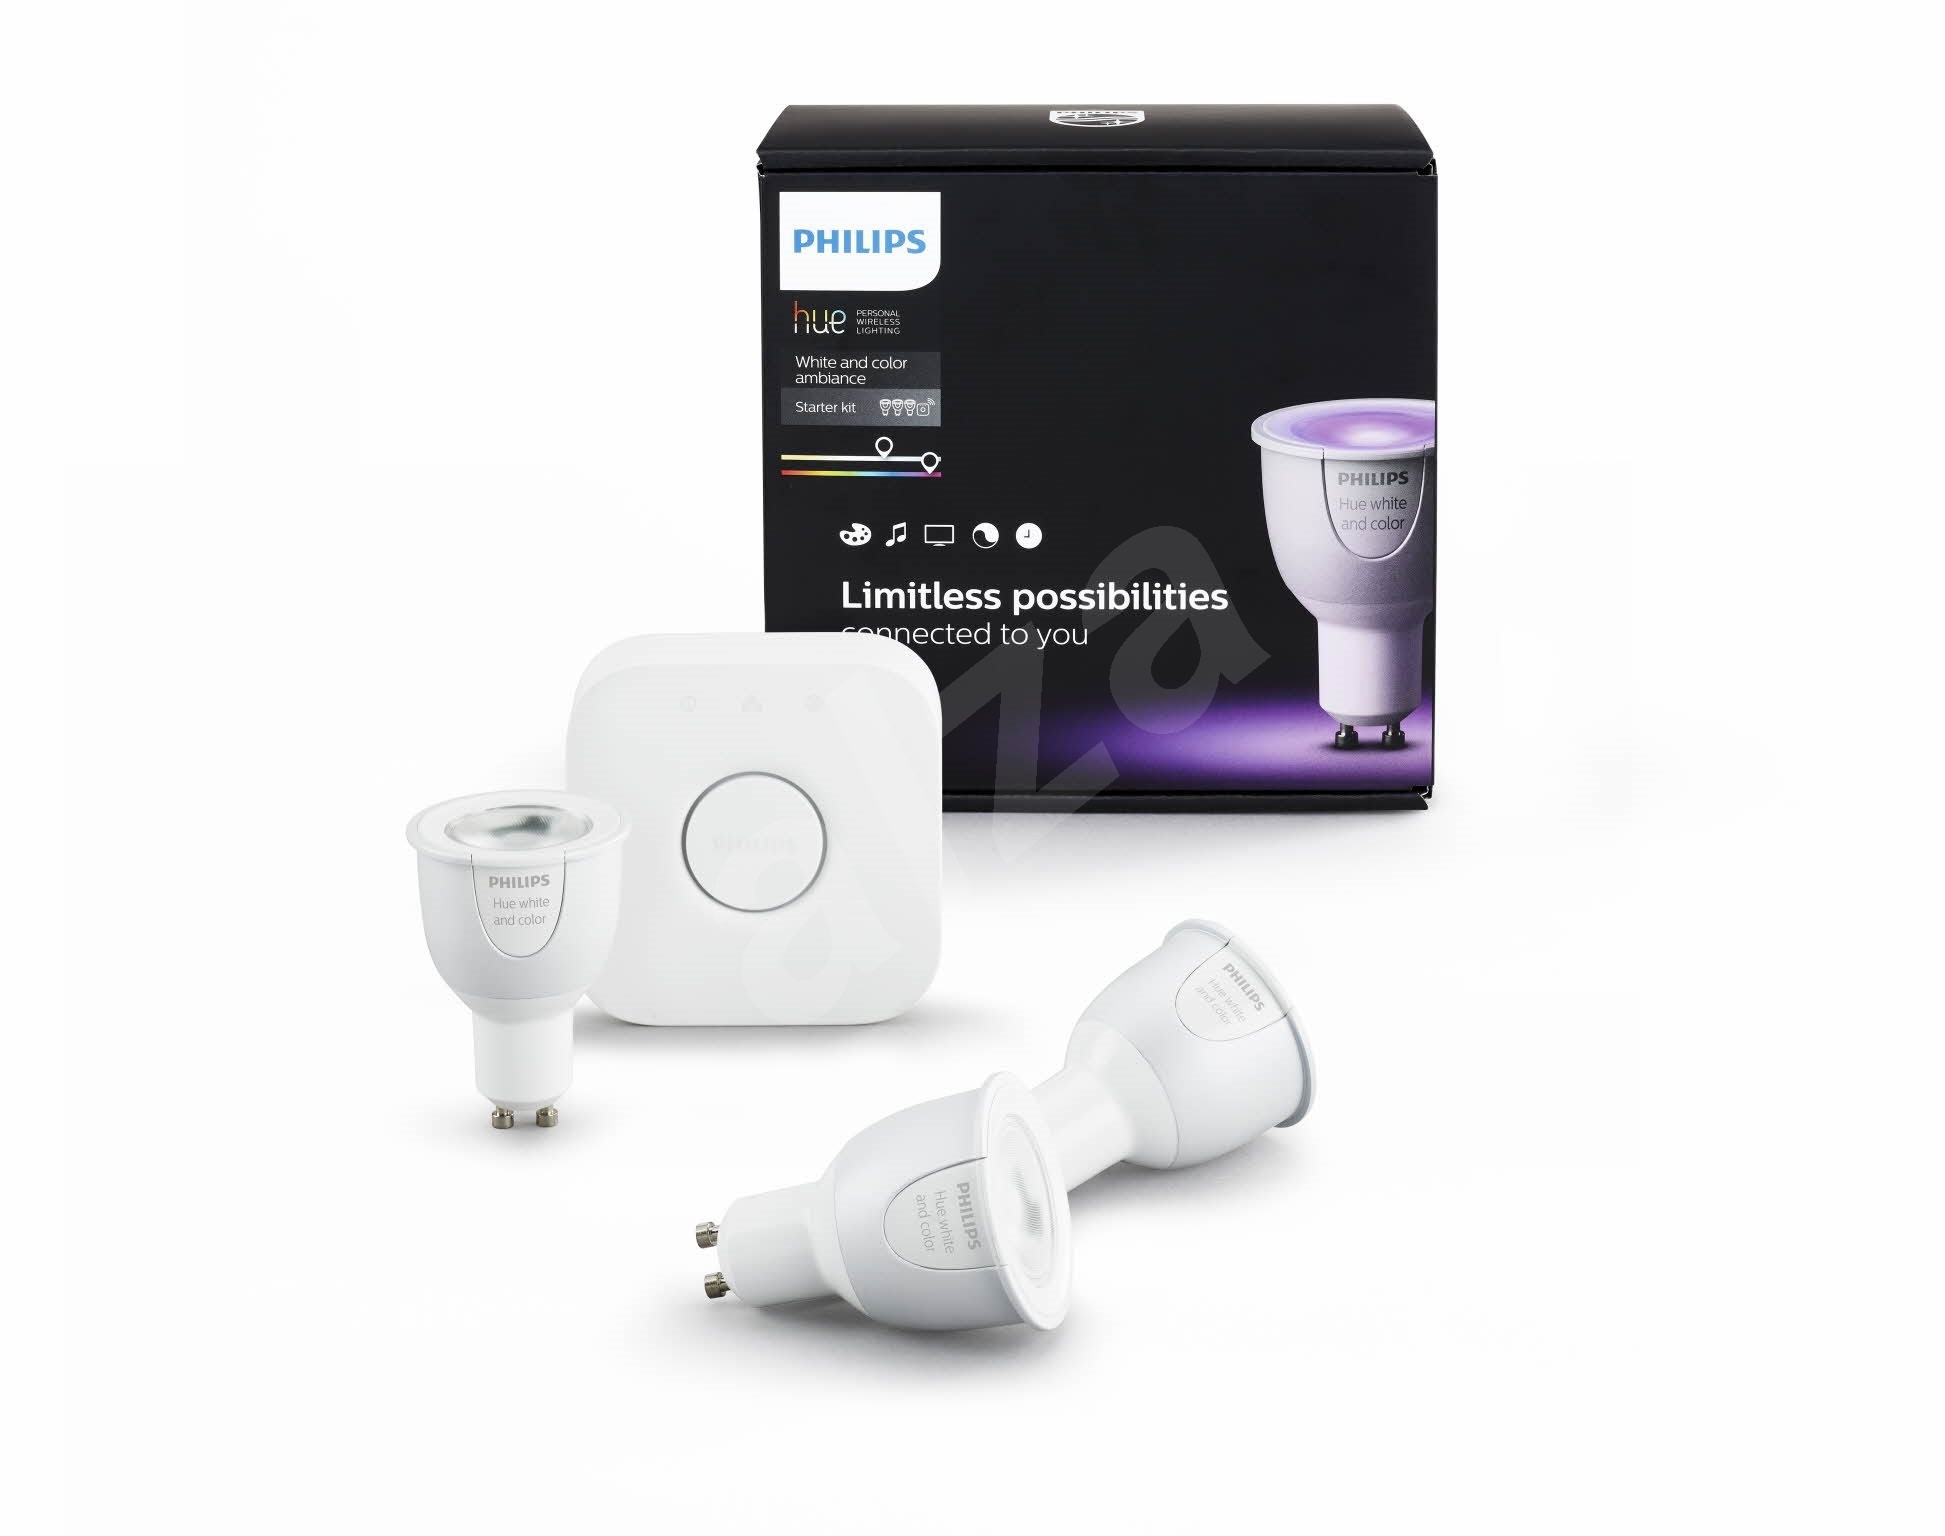 philips hue white and color ambiance gu10 6 5w starter kit led bulb. Black Bedroom Furniture Sets. Home Design Ideas